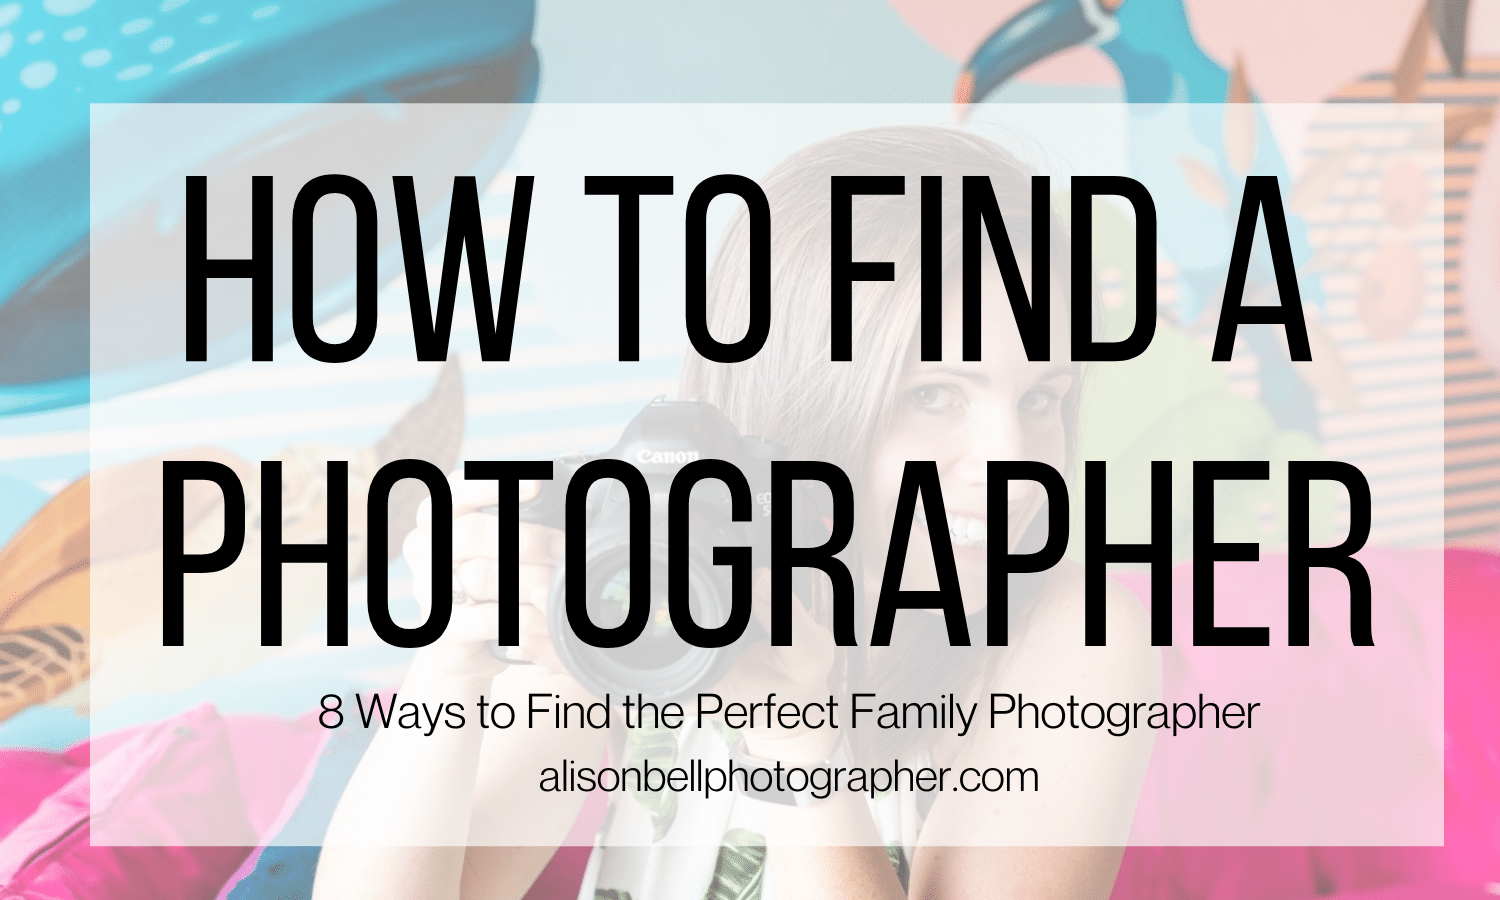 8 ways to find the perfect family photographer, how to find a family photogrpaher